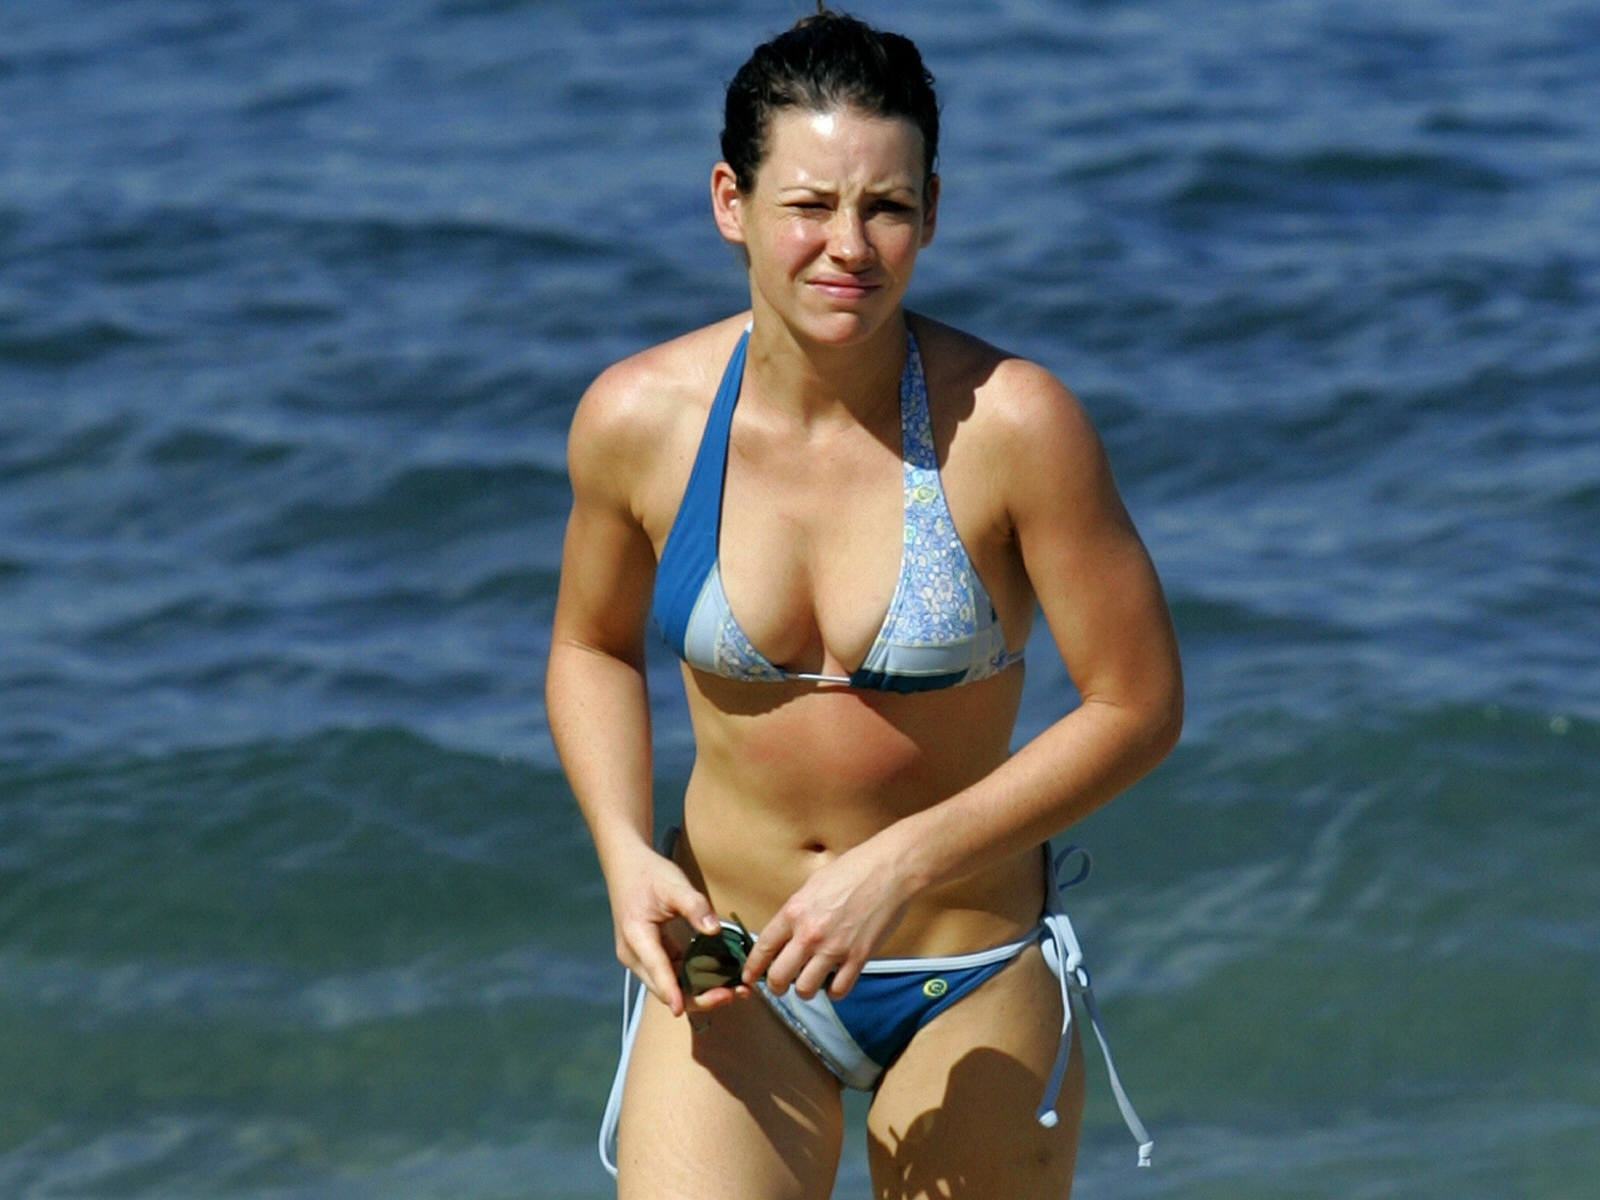 Wallpaper di Evangeline Lilly al mare